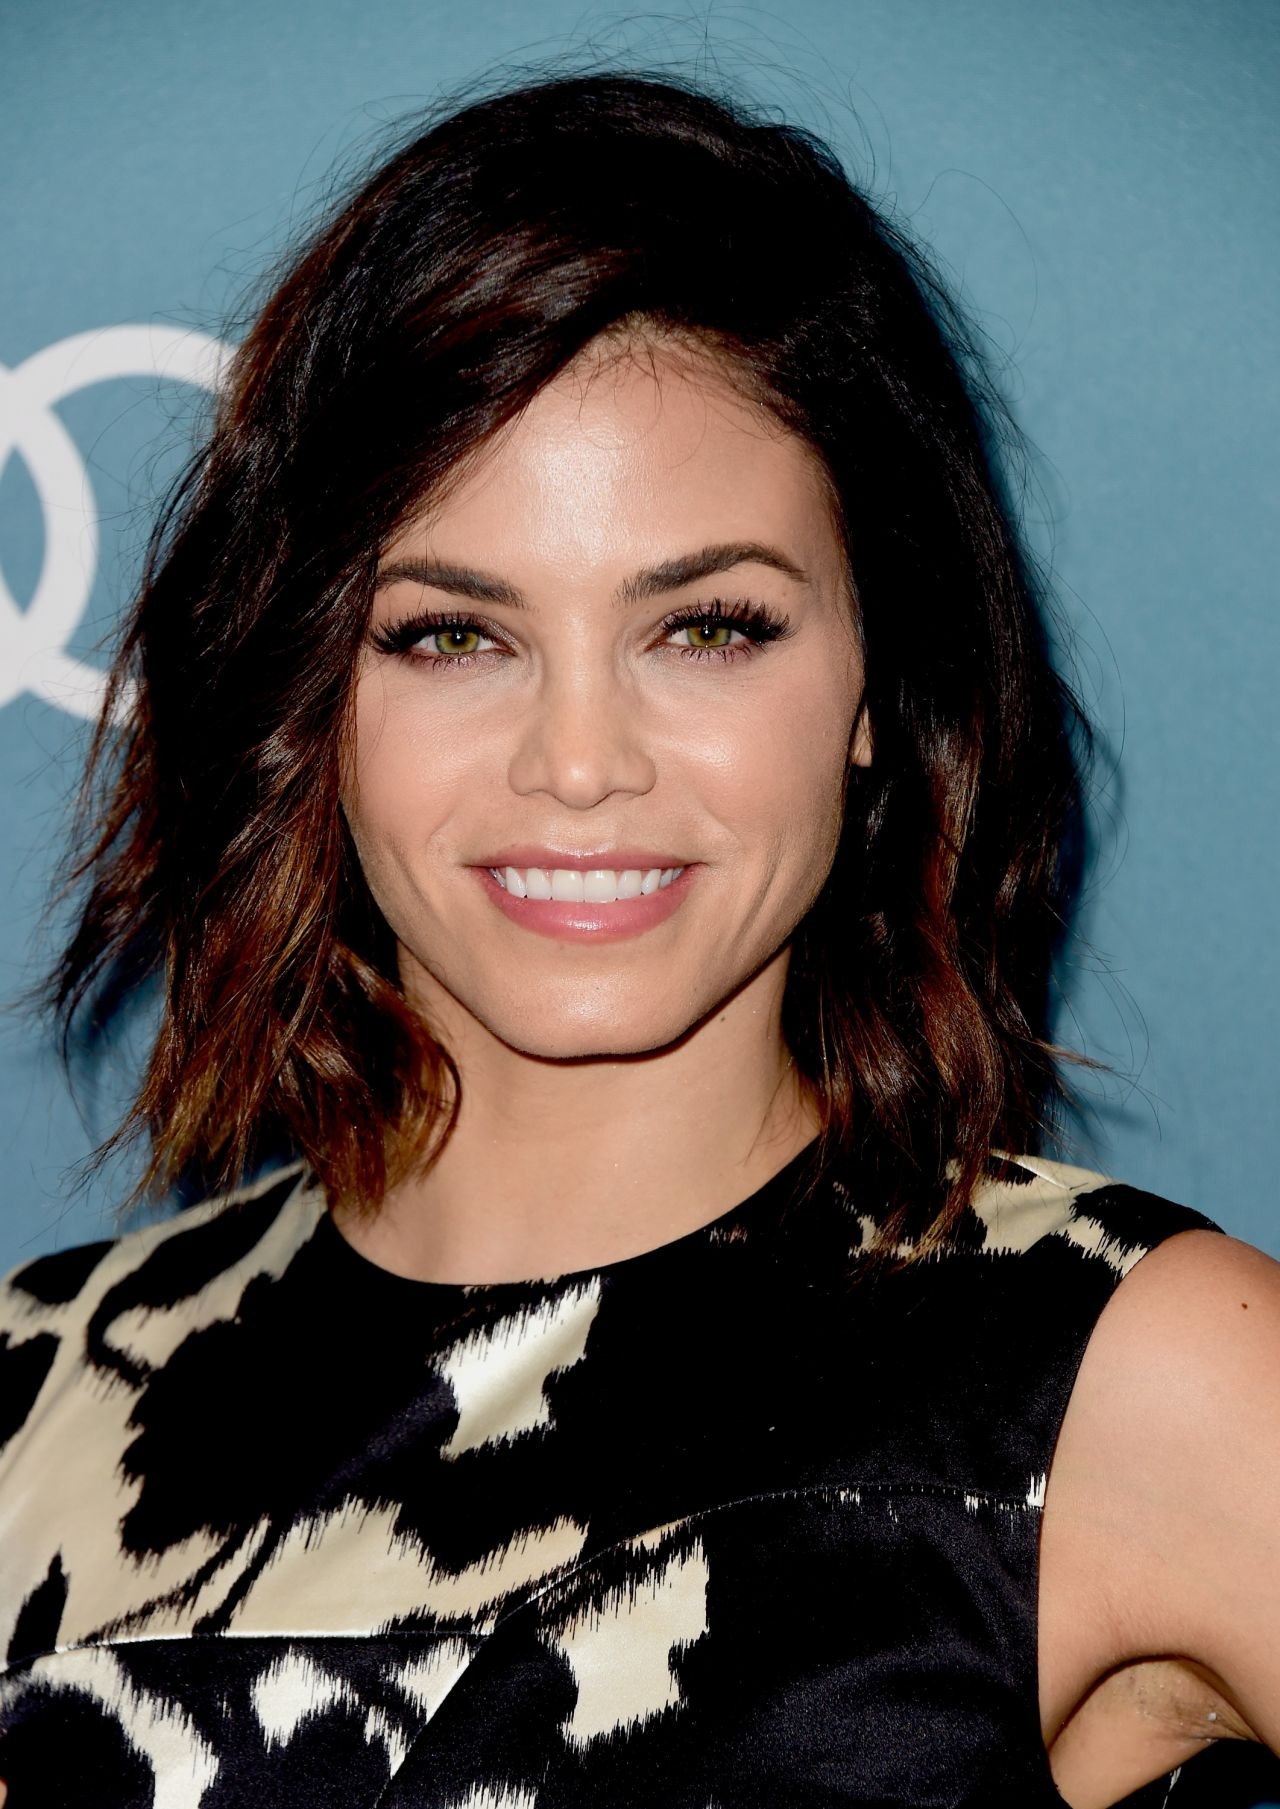 Jenna Dewan Tatum Variety S Power Of Women Luncheon In